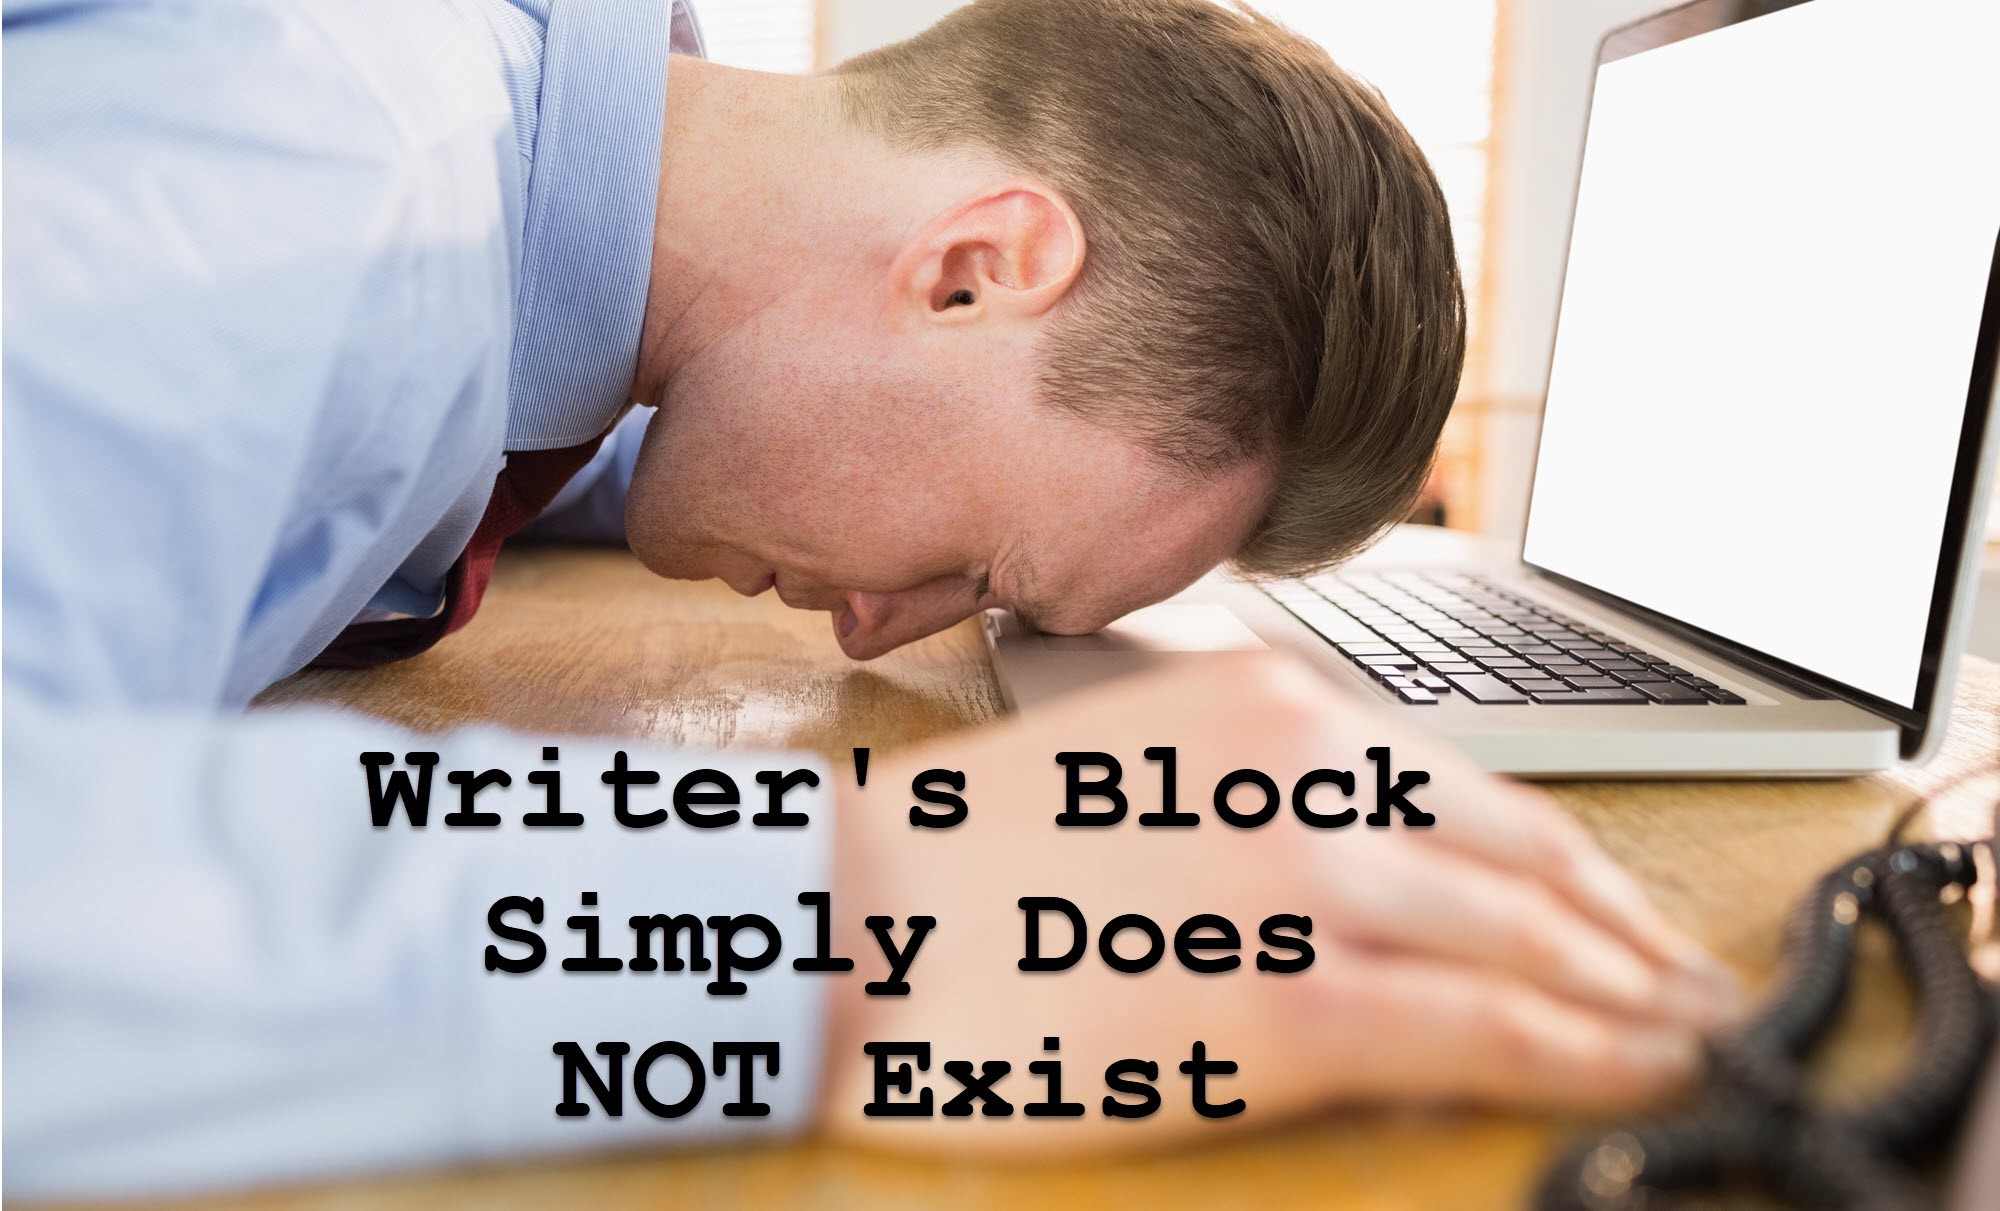 Writers Block Simply Does NOT Exist - The Startup - Medium